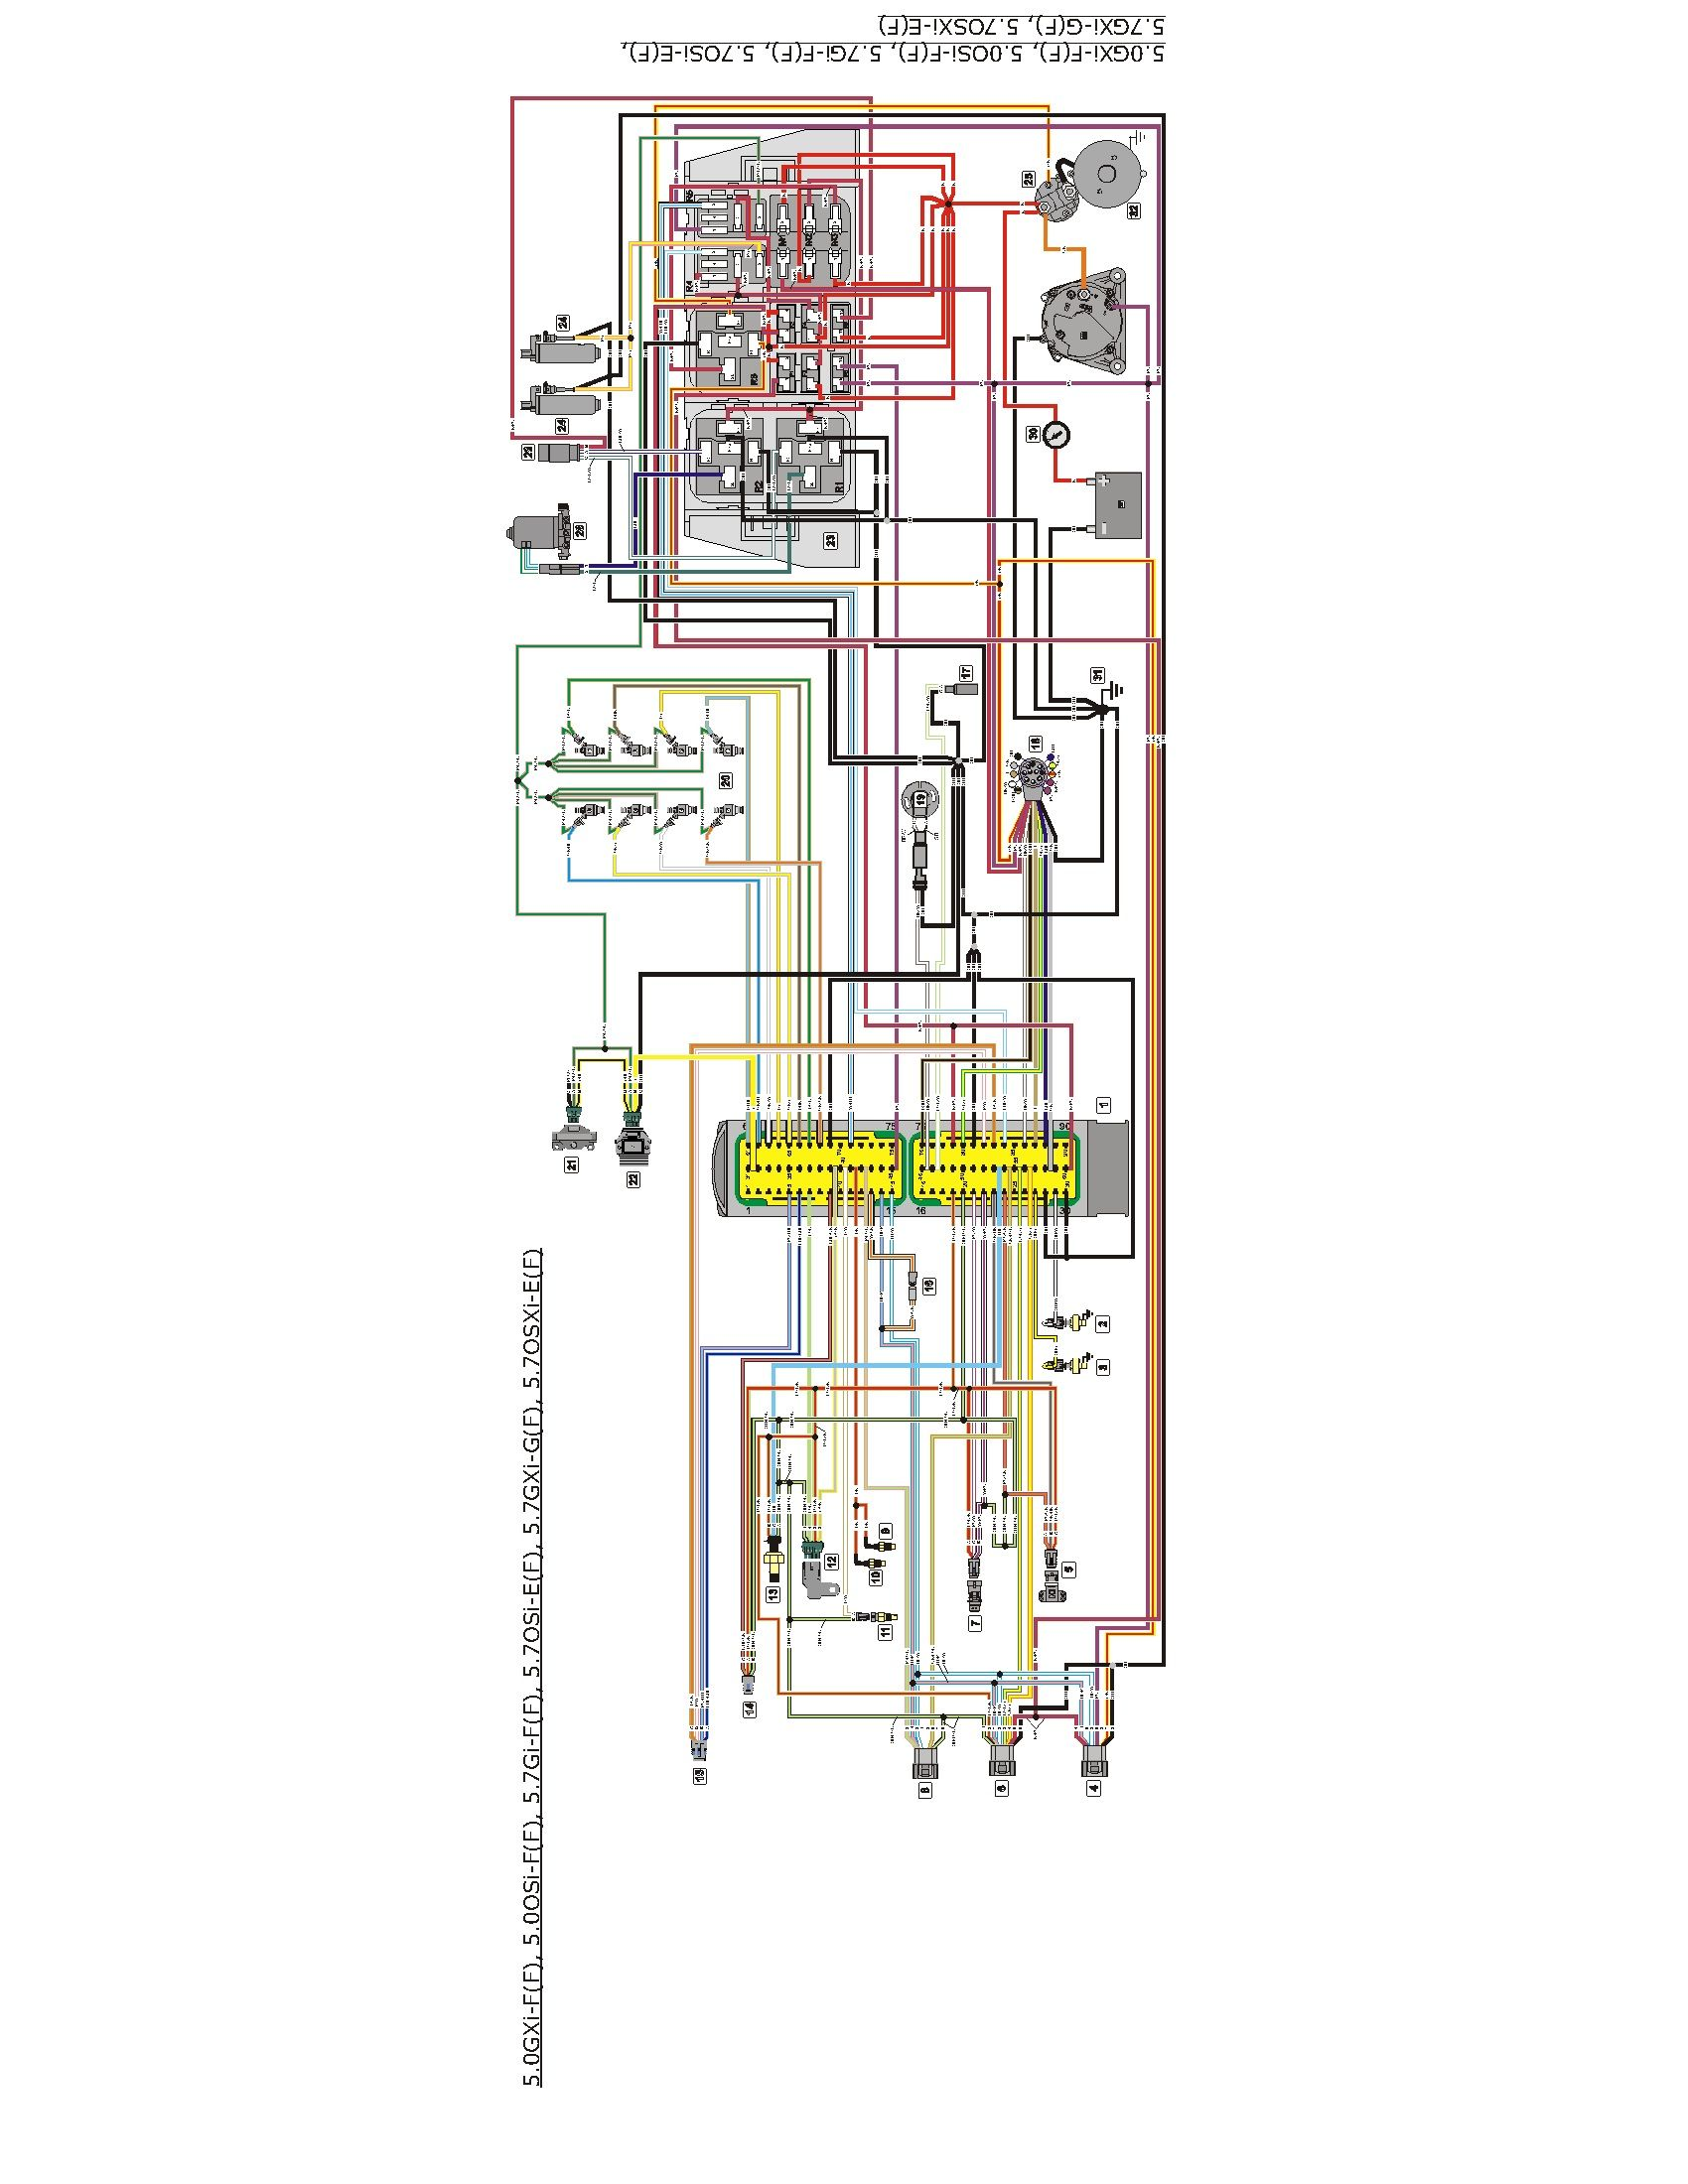 38e0106861e0fe47e508530985b32839 volvo penta 5 7 wiring diagram simple boat wiring diagram \u2022 free volvo penta 5.7 gxi wiring diagram at sewacar.co